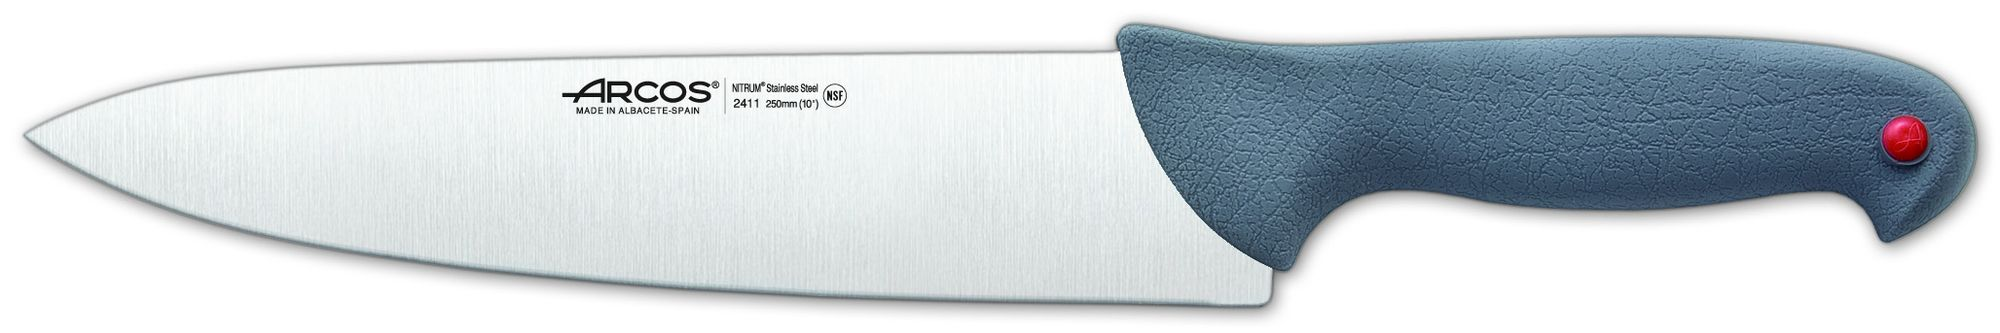 Chef's Knife Arcos ref.: 241100